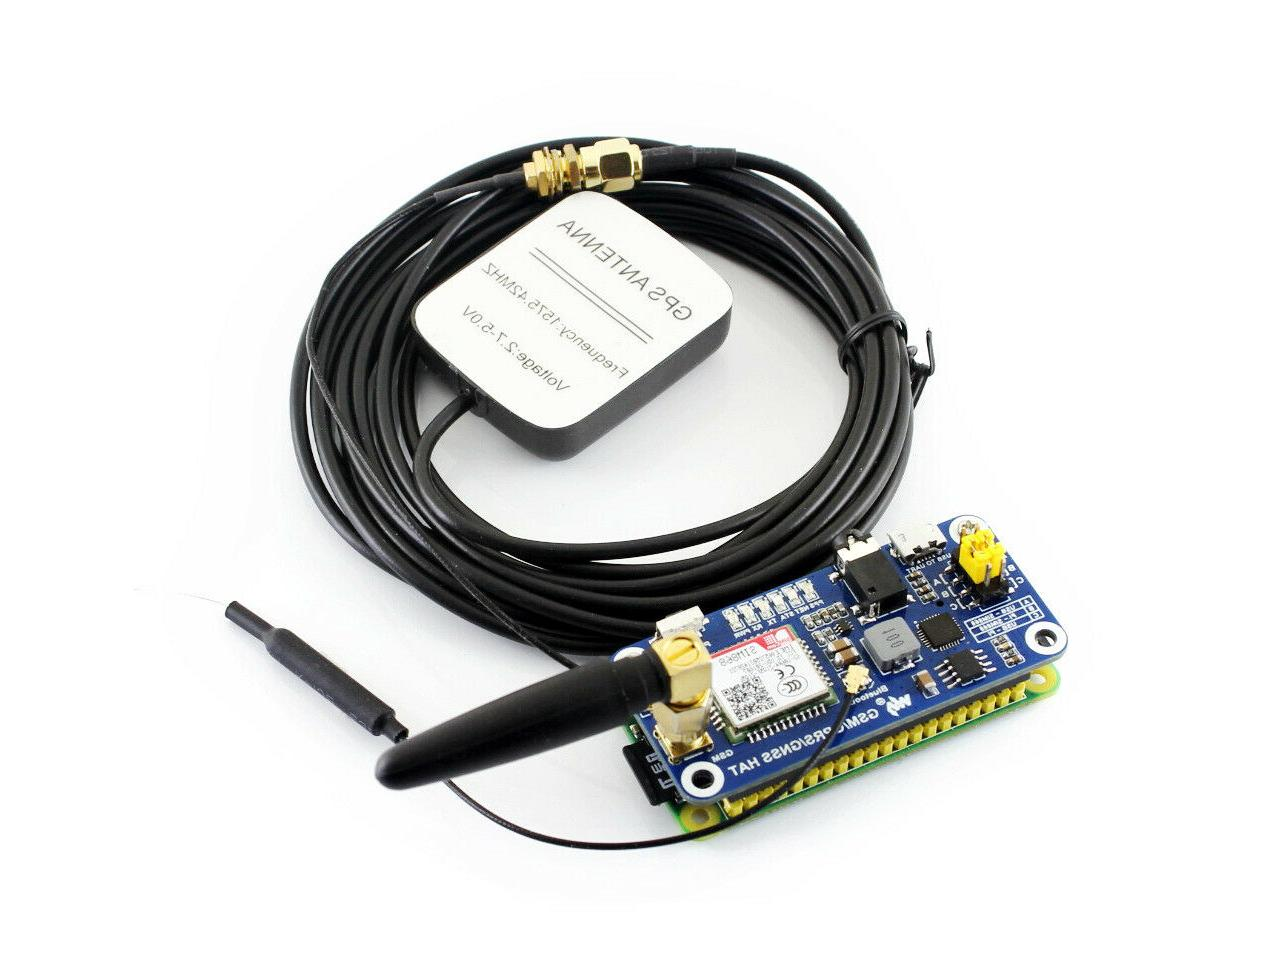 gsm gprs gnss bluetooth hat for raspberry